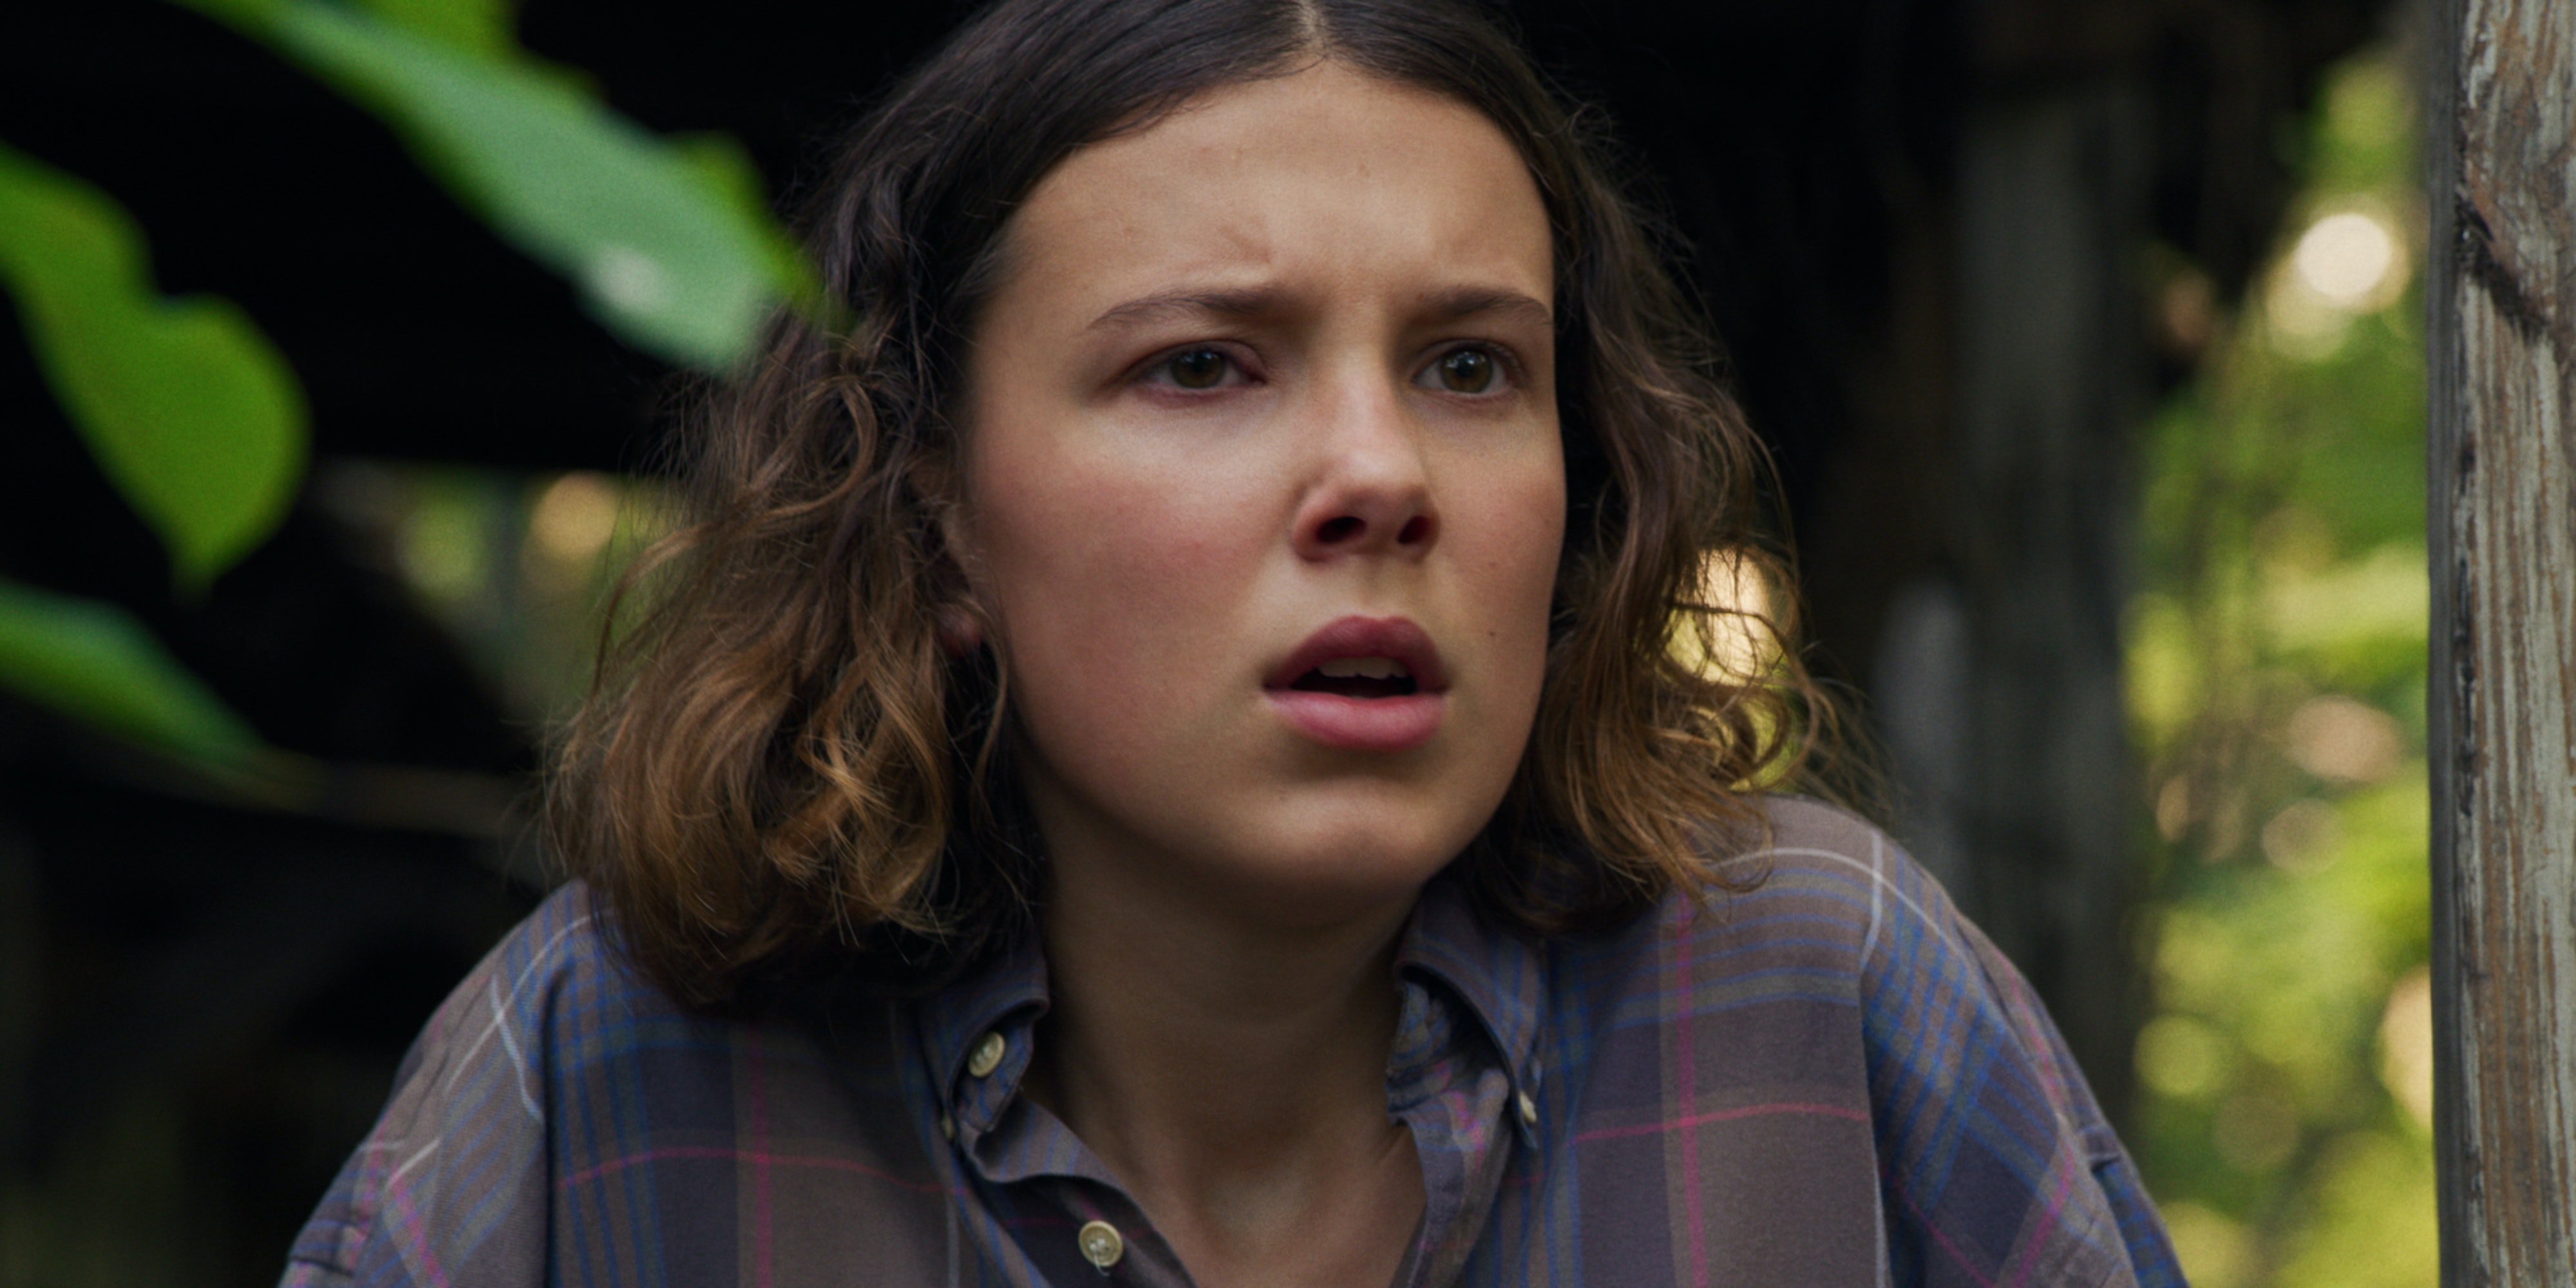 9 'Stranger Things 4' Reddit Theories That Could Predict